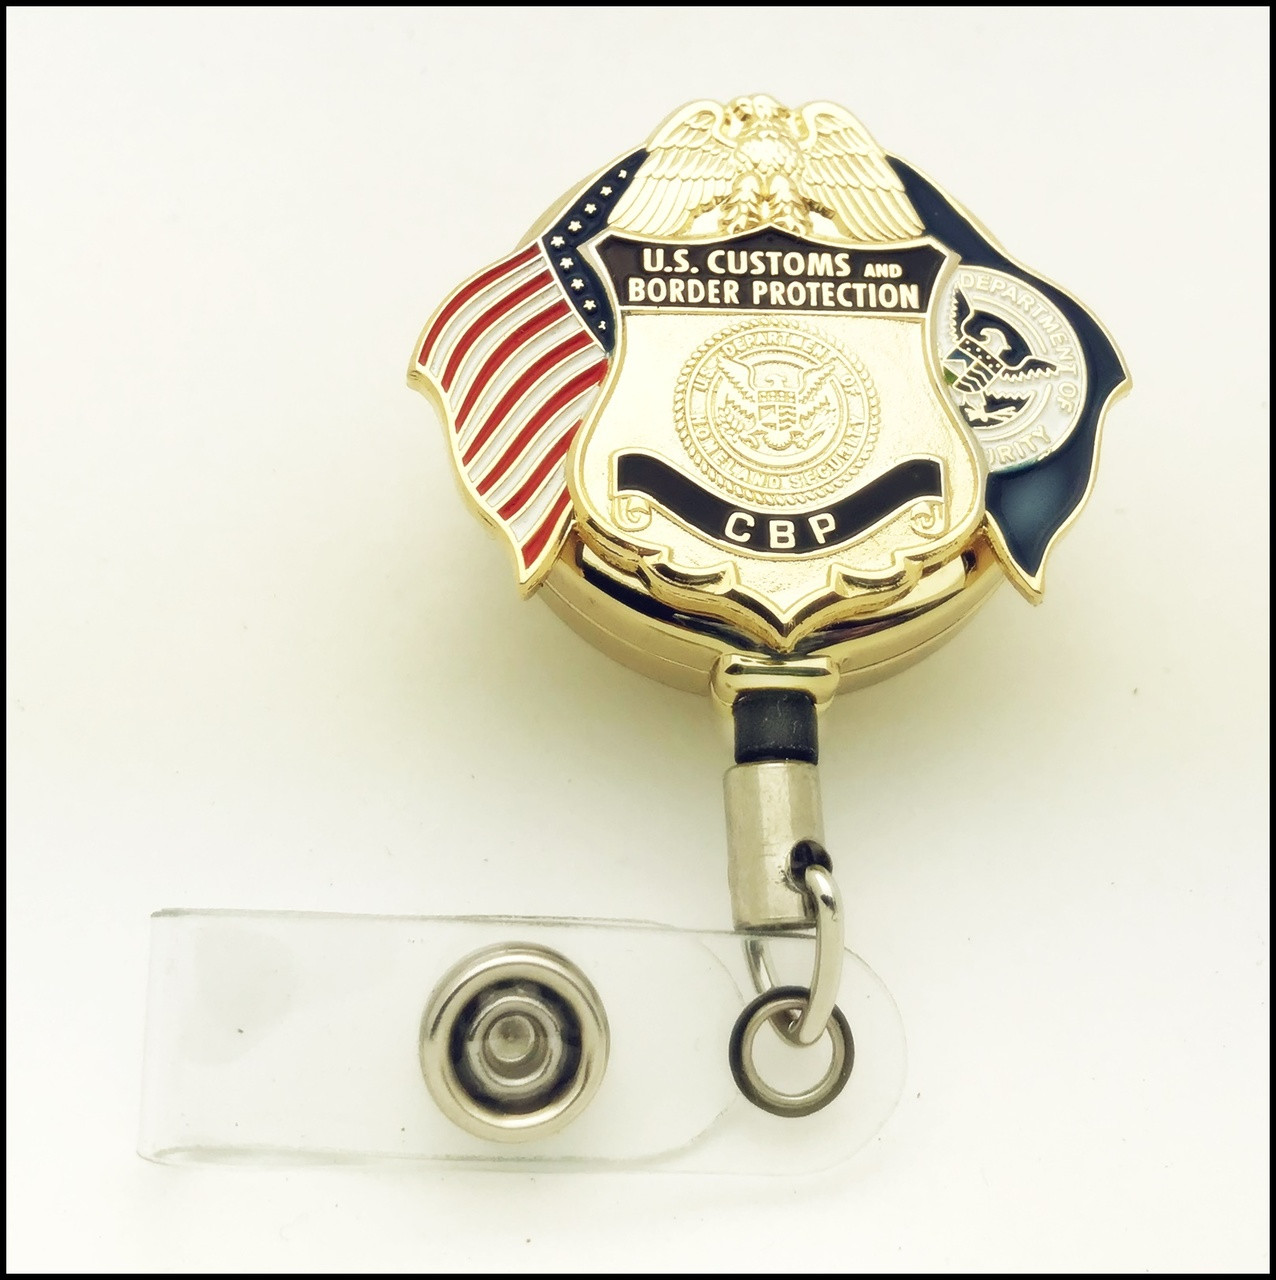 Customs and Border Protection Officer Mini Badge and Flags ID Holder   ID Reel